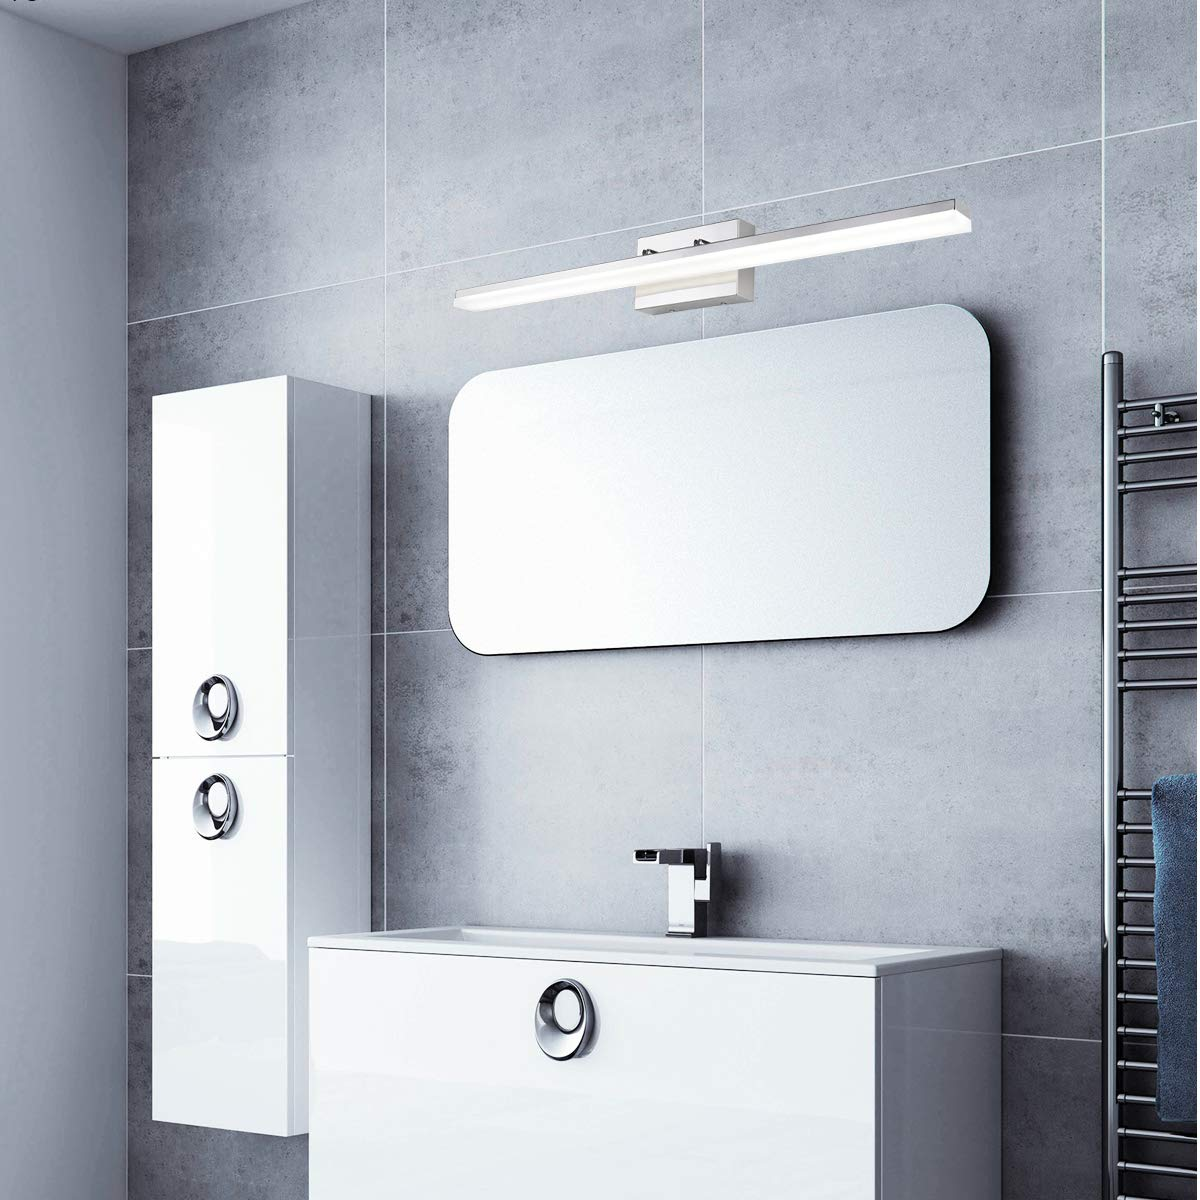 mirrea 36in Modern LED Vanity Light for Bathroom Lighting Dimmable 36w Cold White 5000K by mirrea (Image #2)